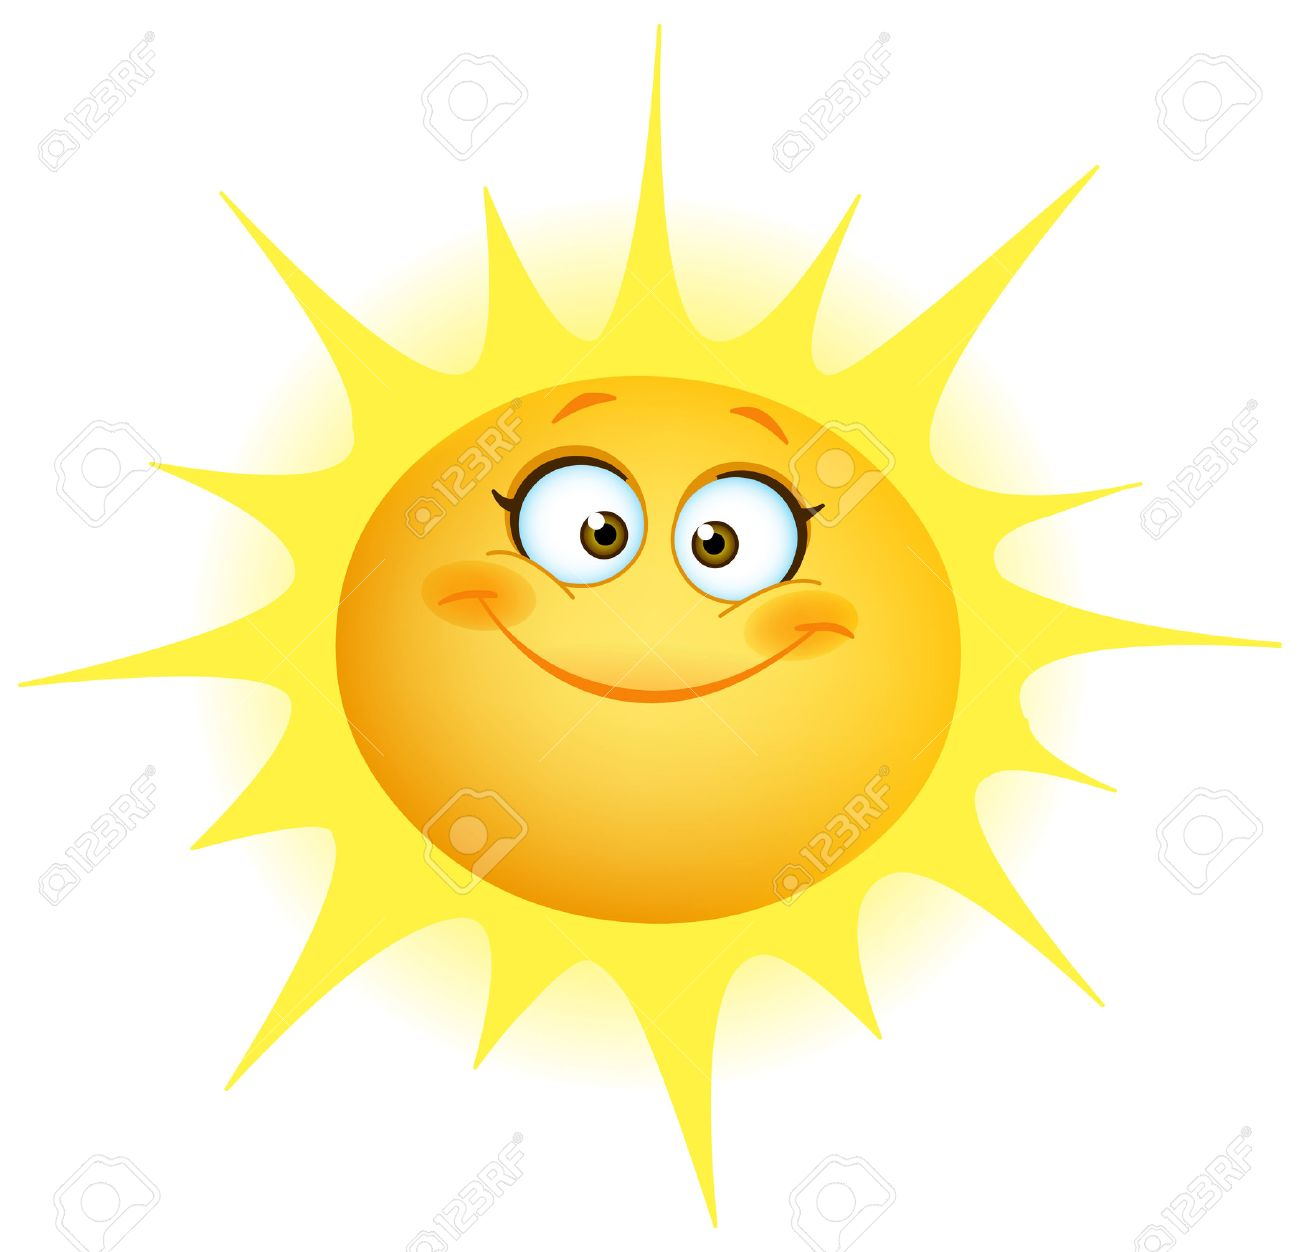 cute smiling sun royalty free cliparts vectors and stock rh 123rf com Smiling Sun with Colored Background smiling sun clipart free